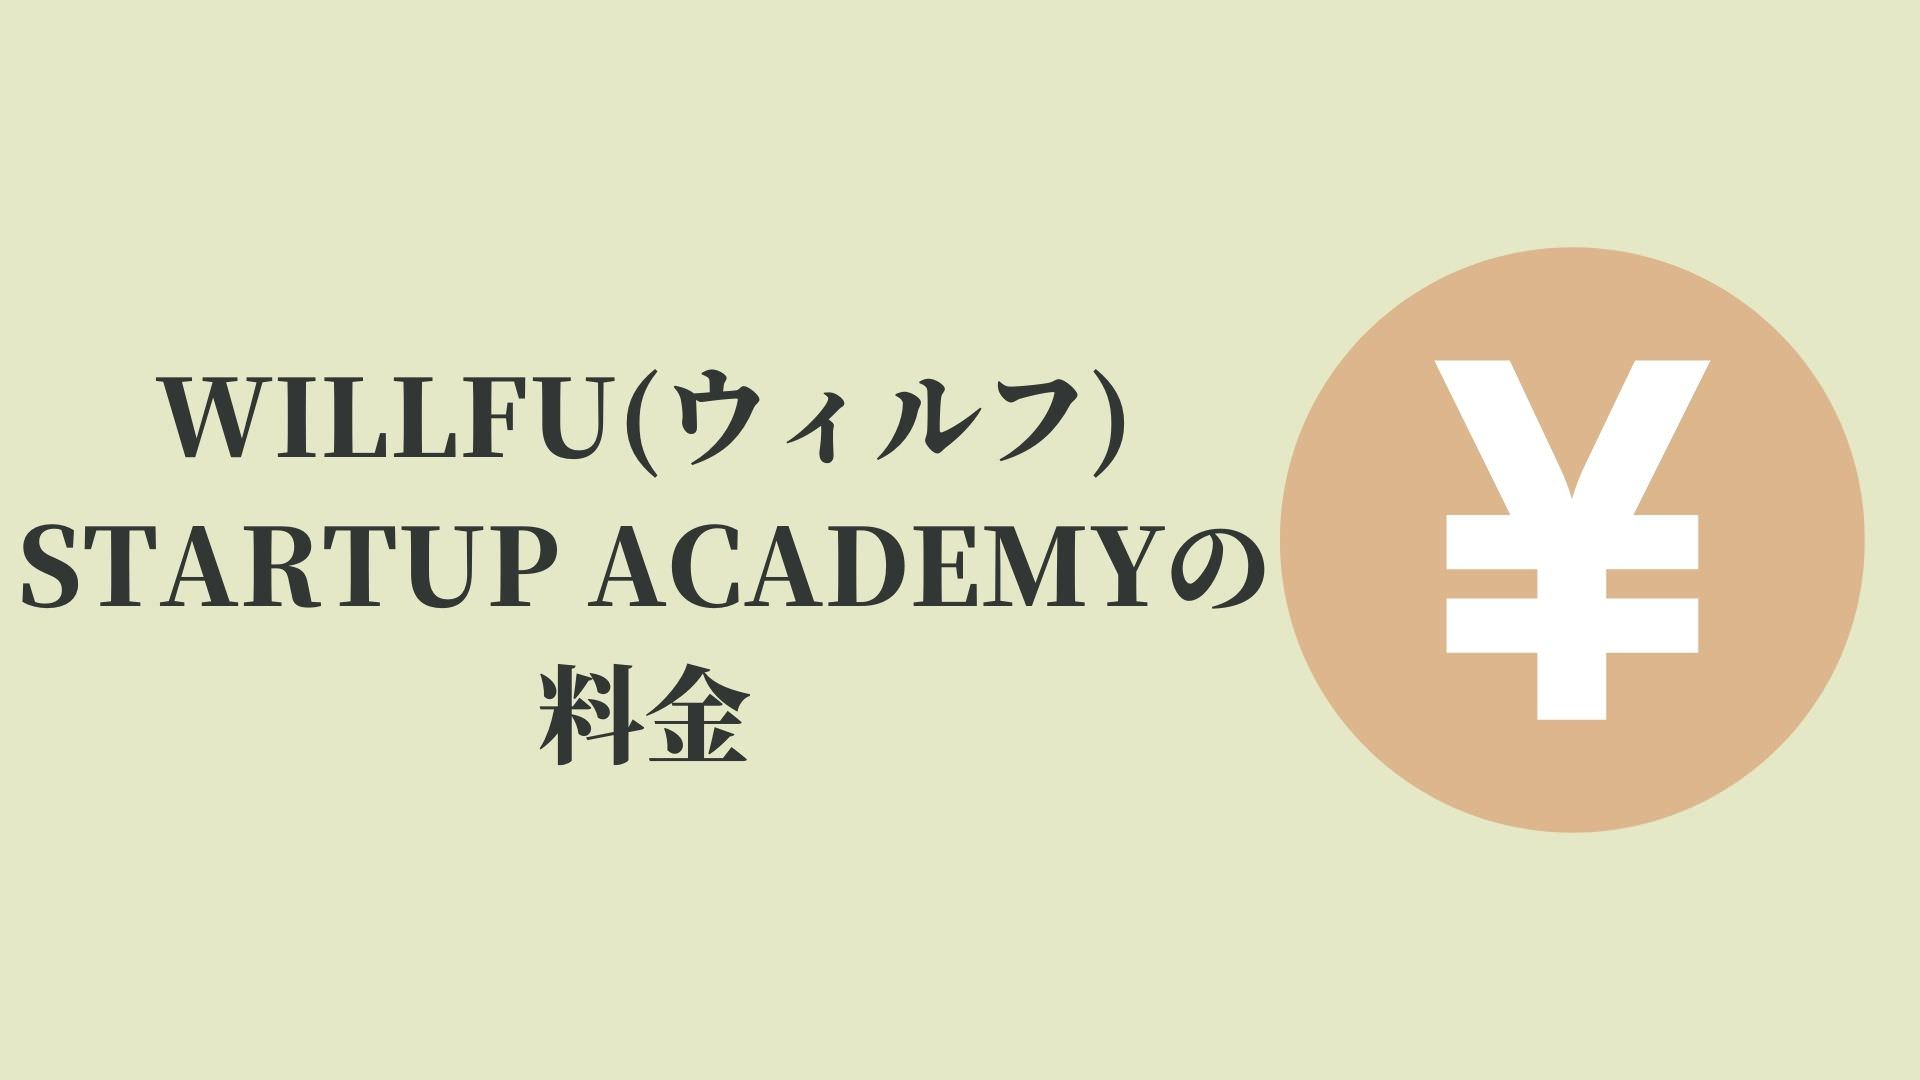 WILLFU(ウィルフ) STARTUP ACADEMYの料金